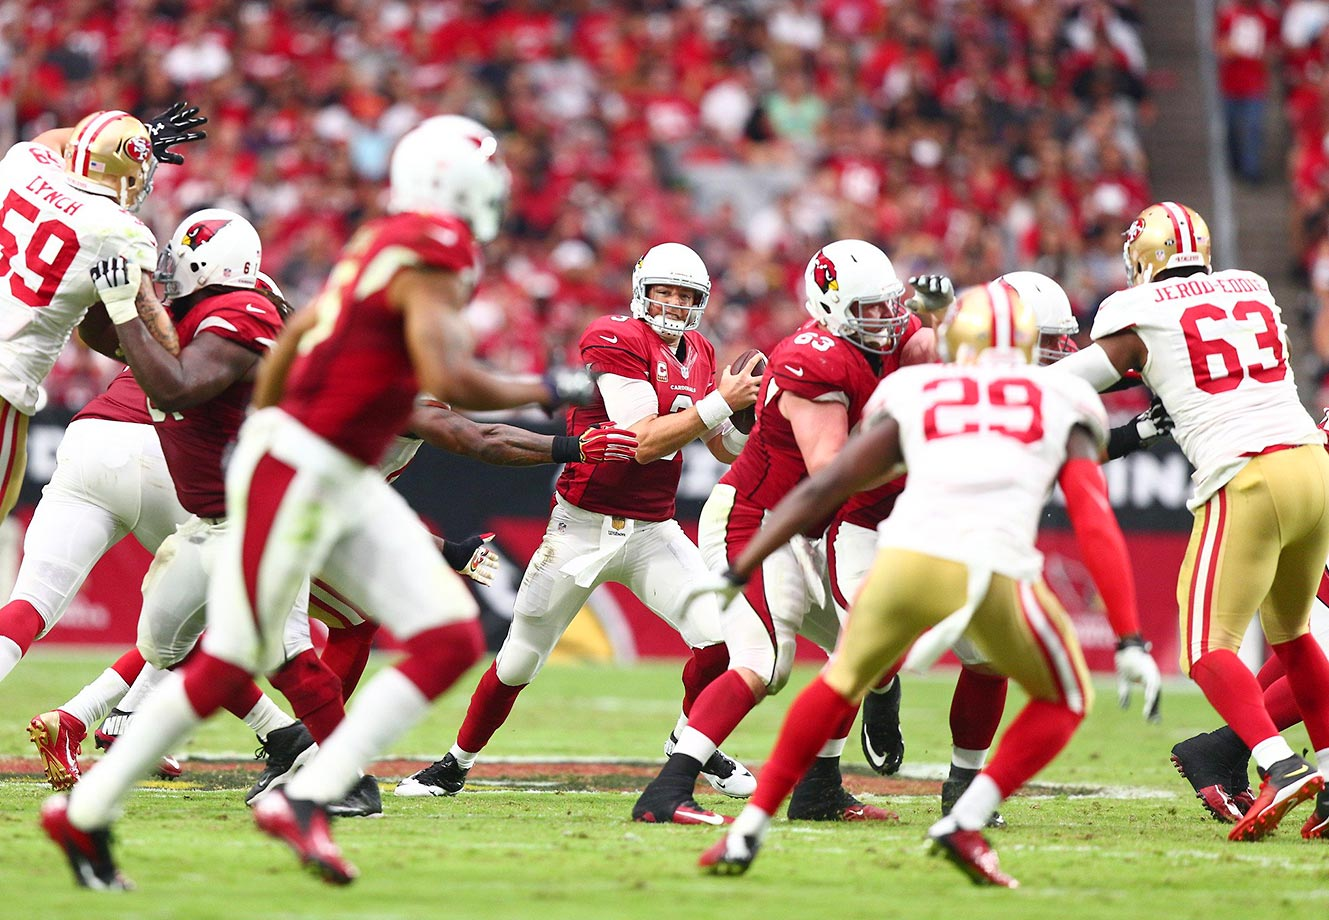 Carson Palmer scans the field against the San Francisco 49ers.